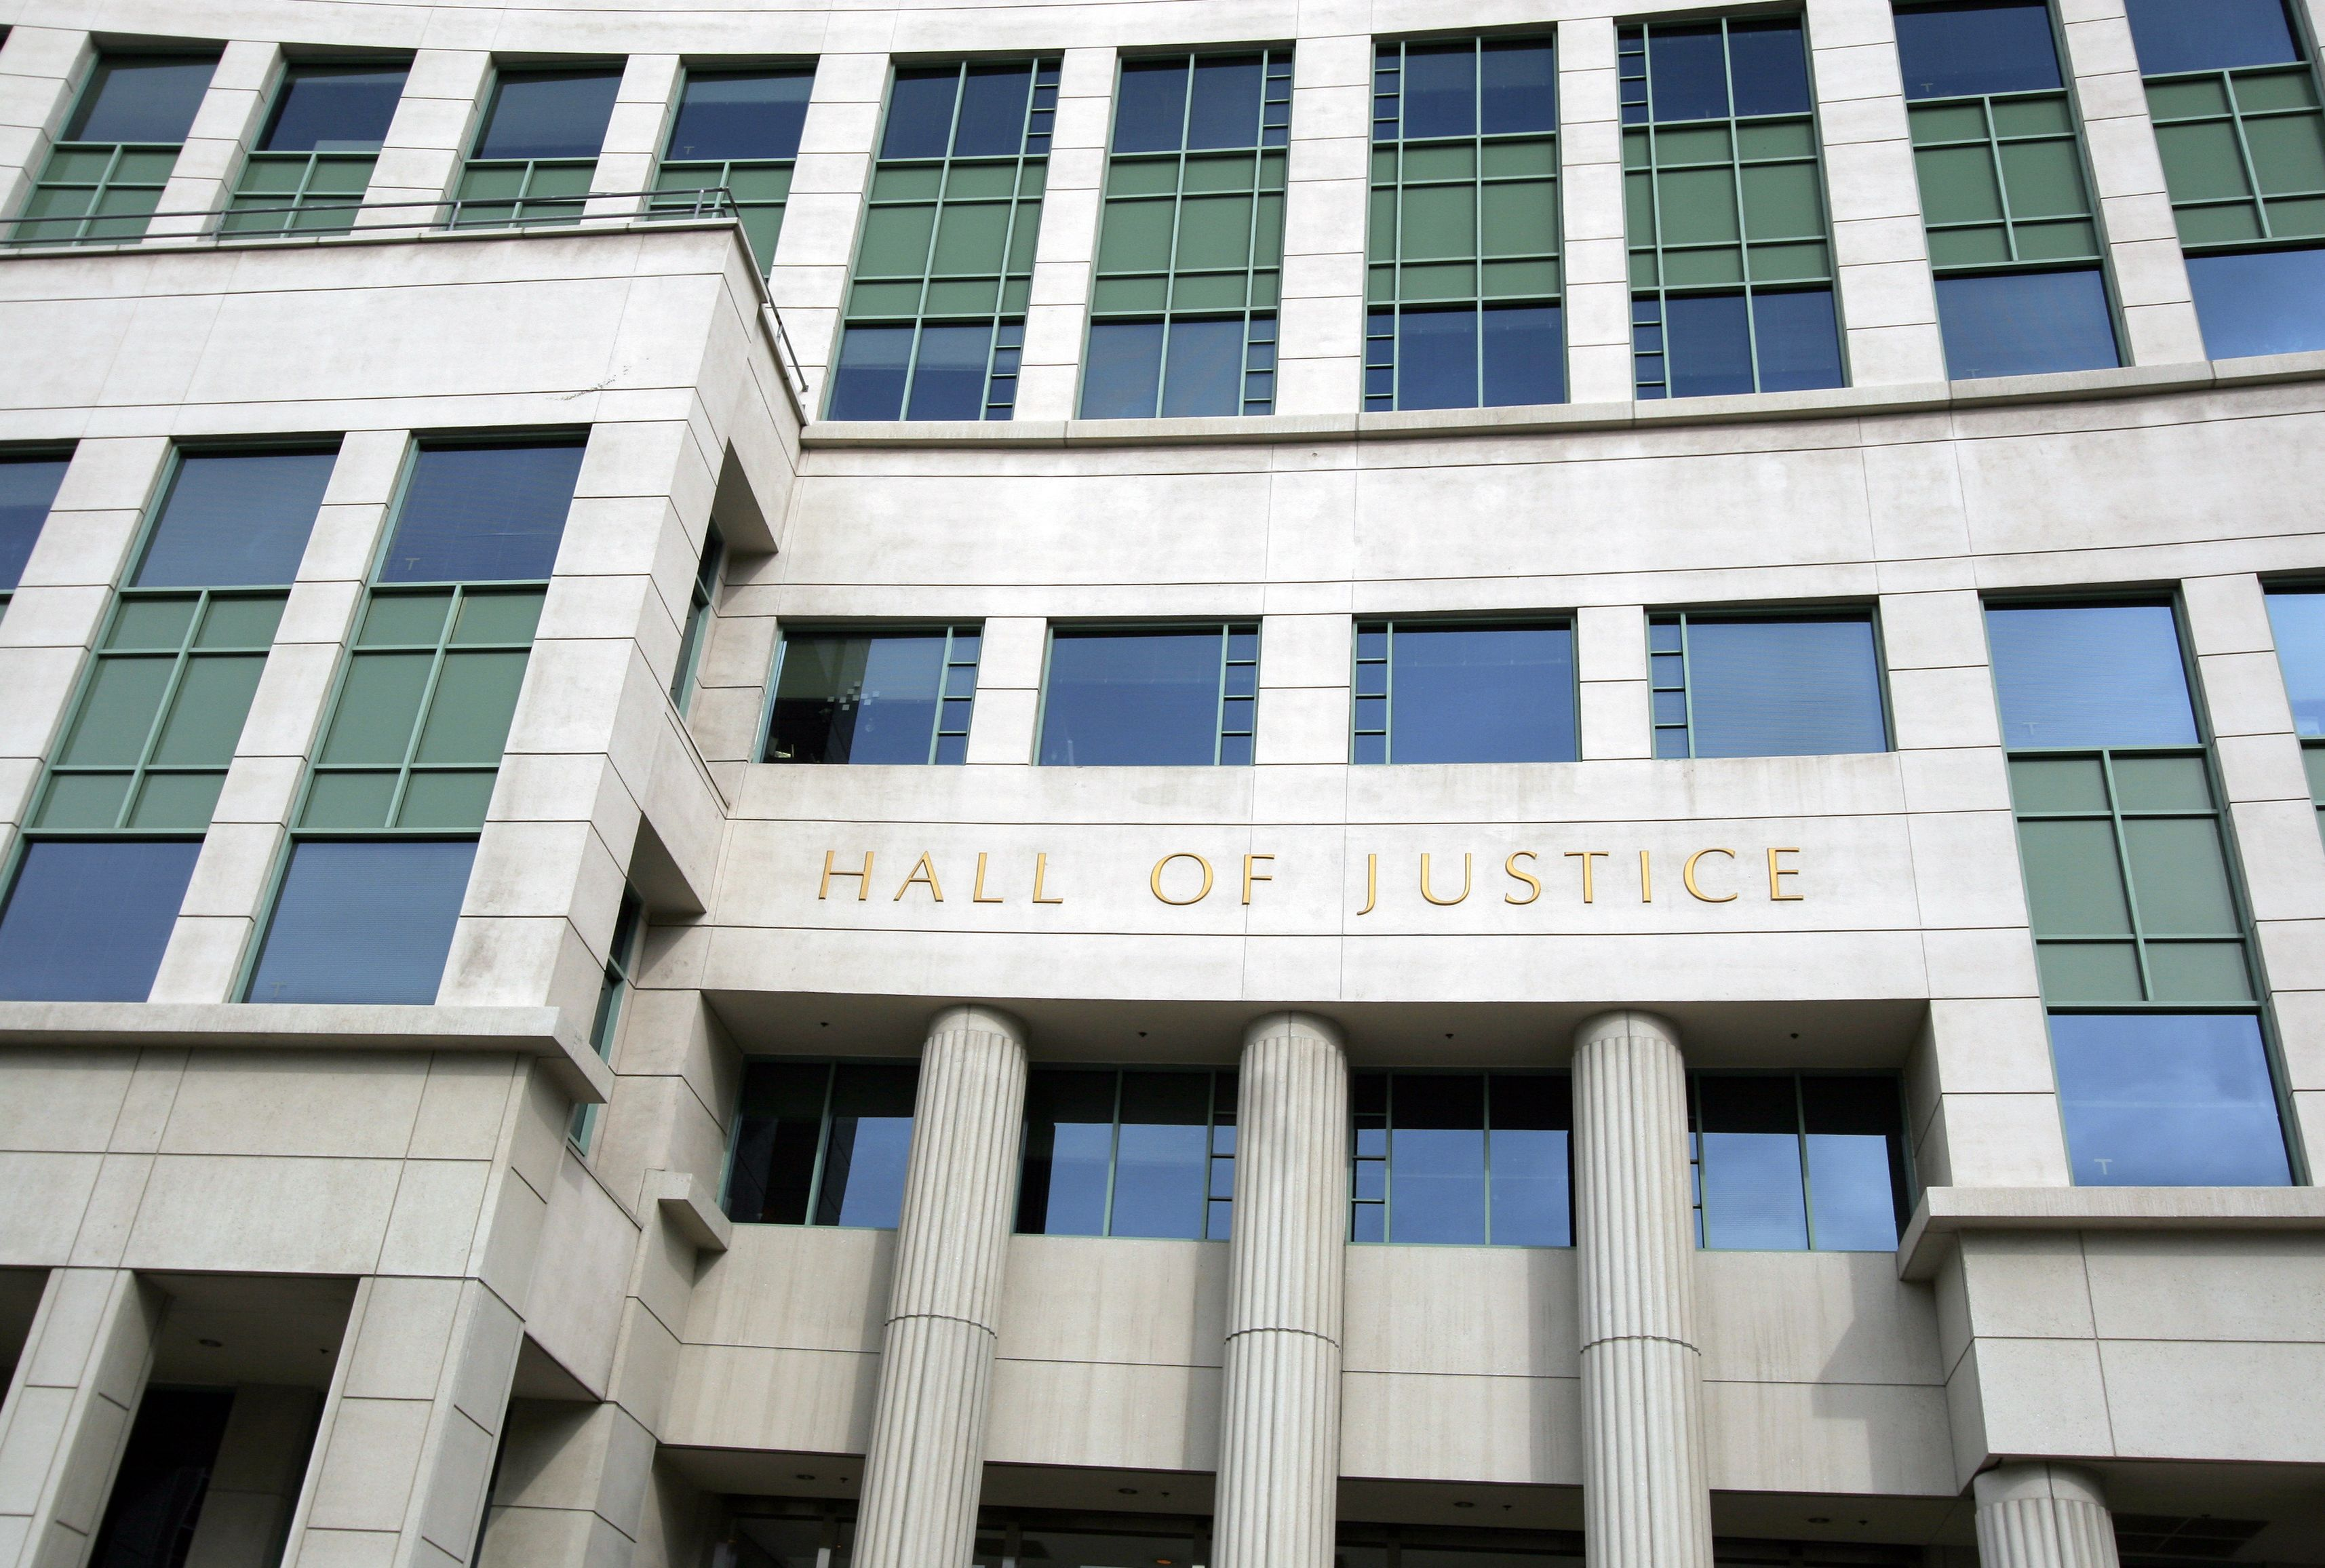 The hall of justice building